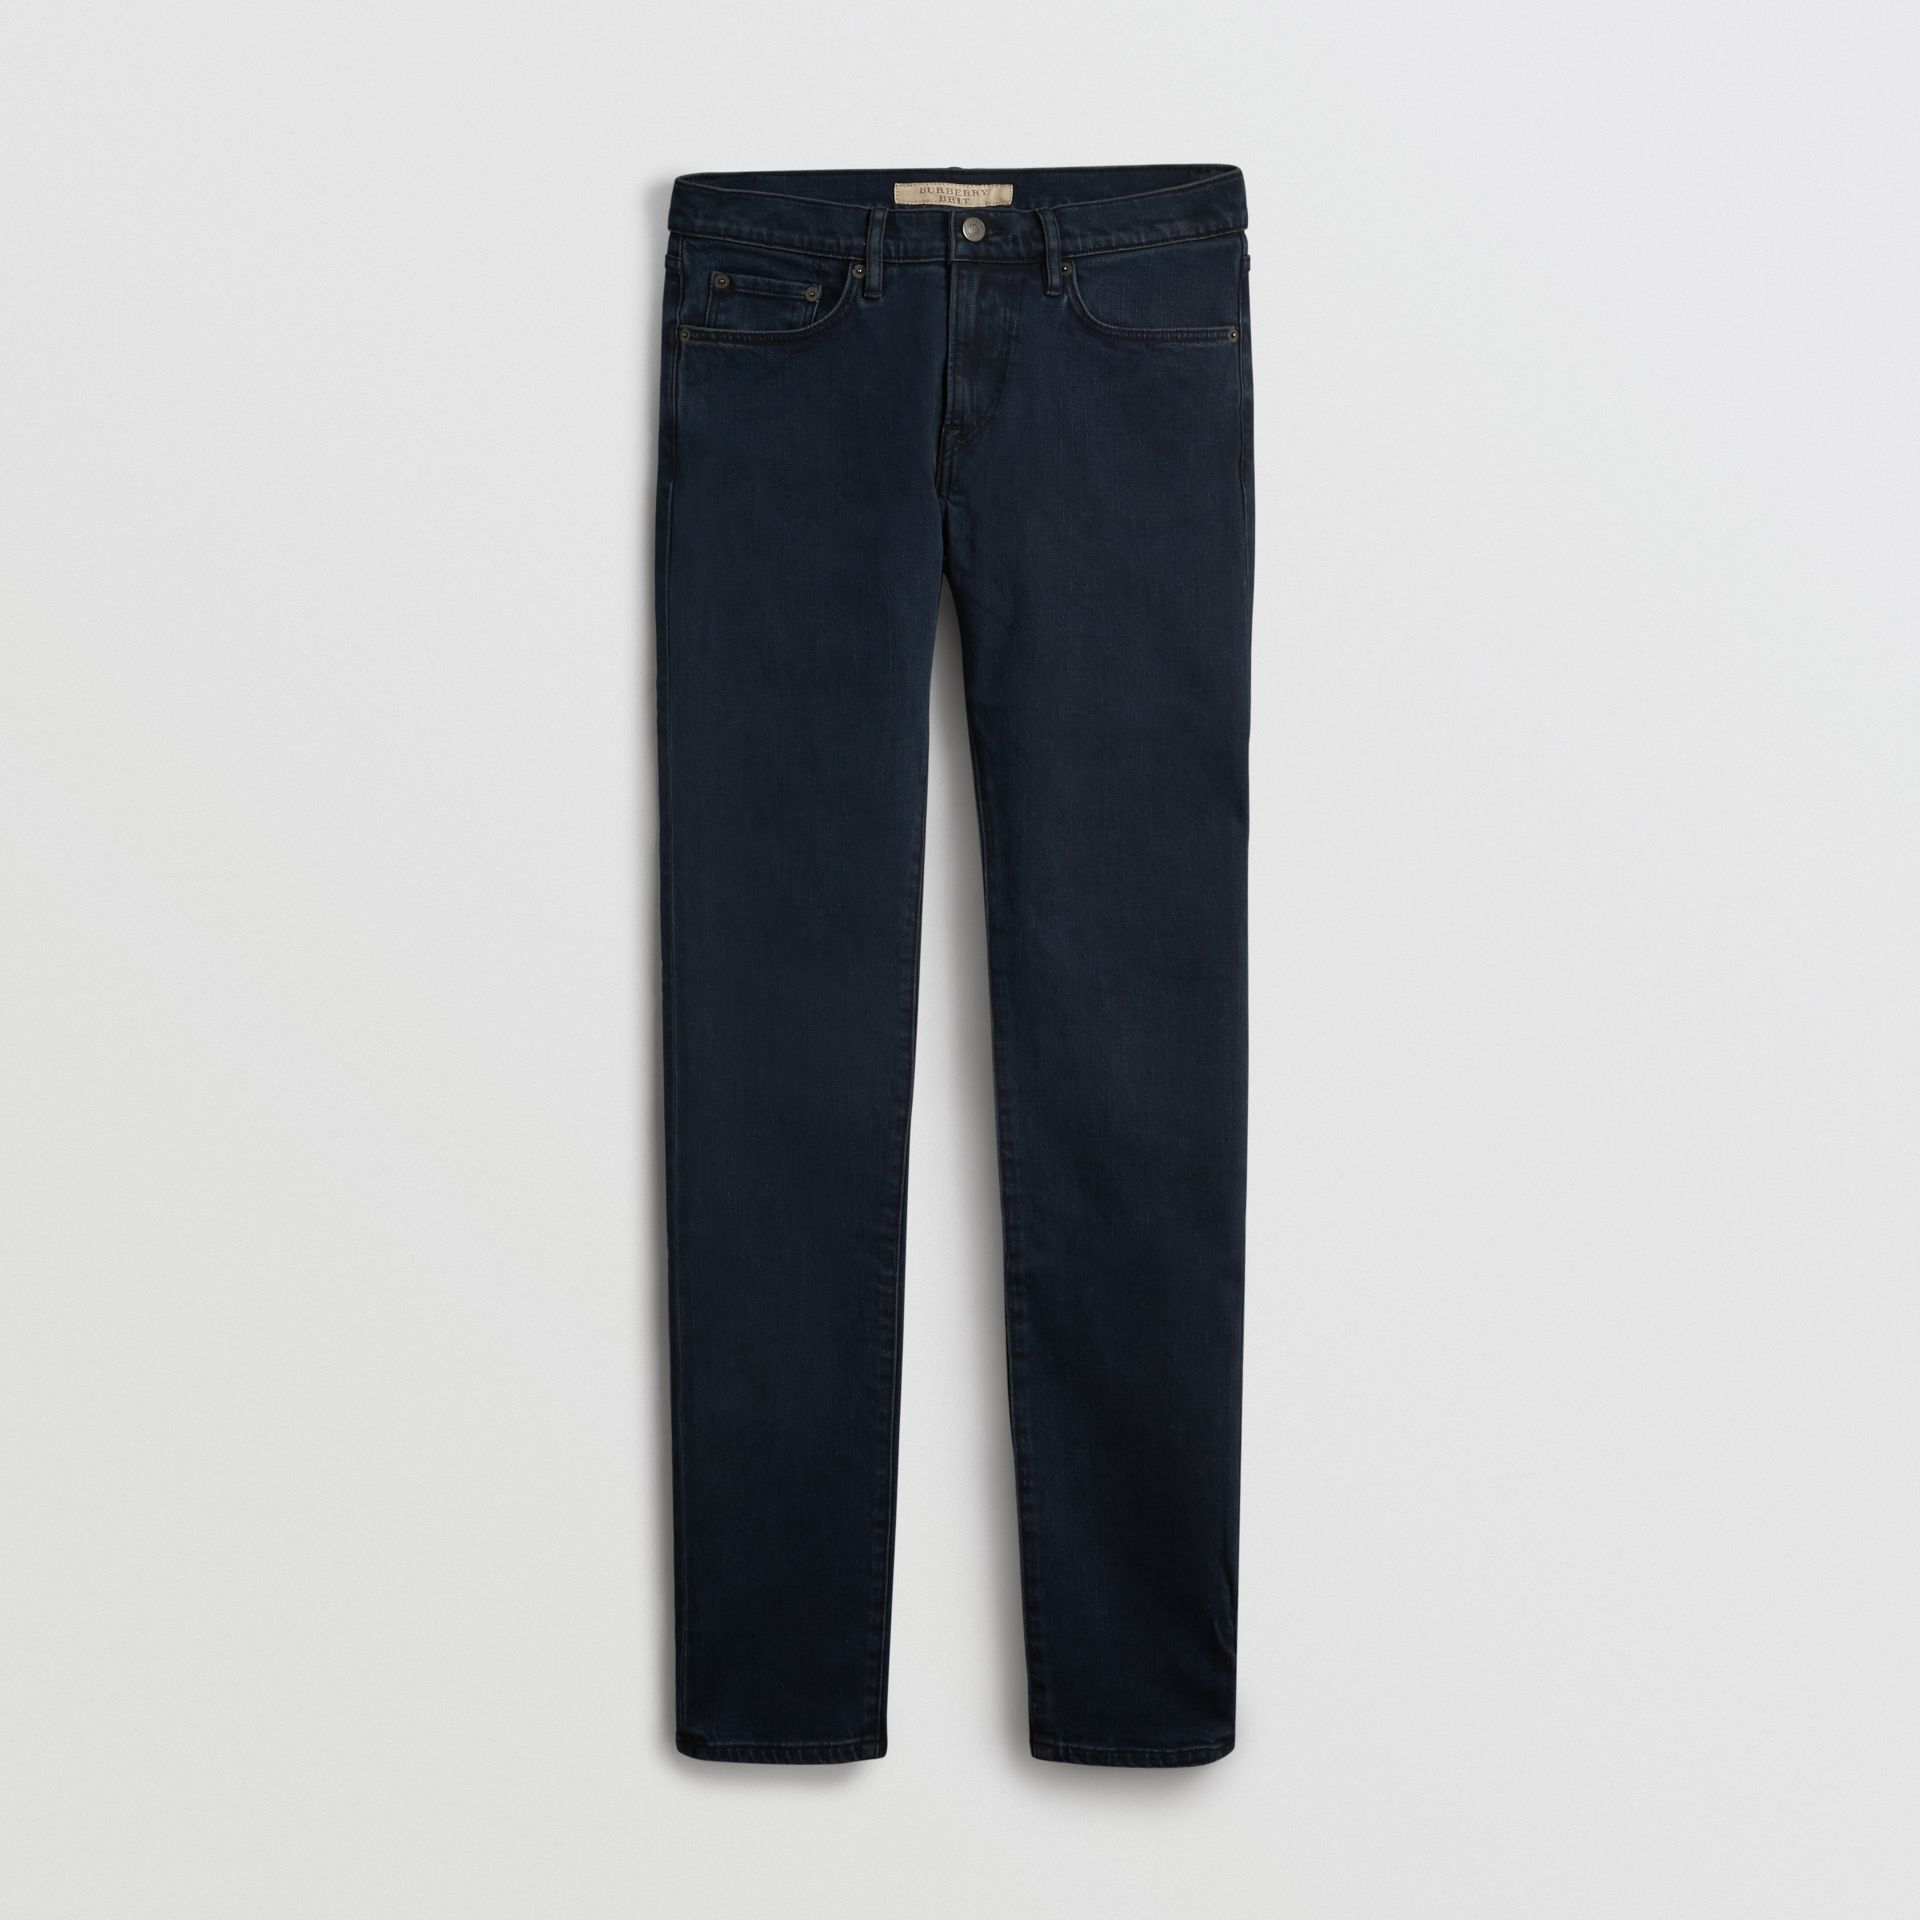 Slim Fit Stretch Denim Jeans in Dark Indigo - Men | Burberry - gallery image 3